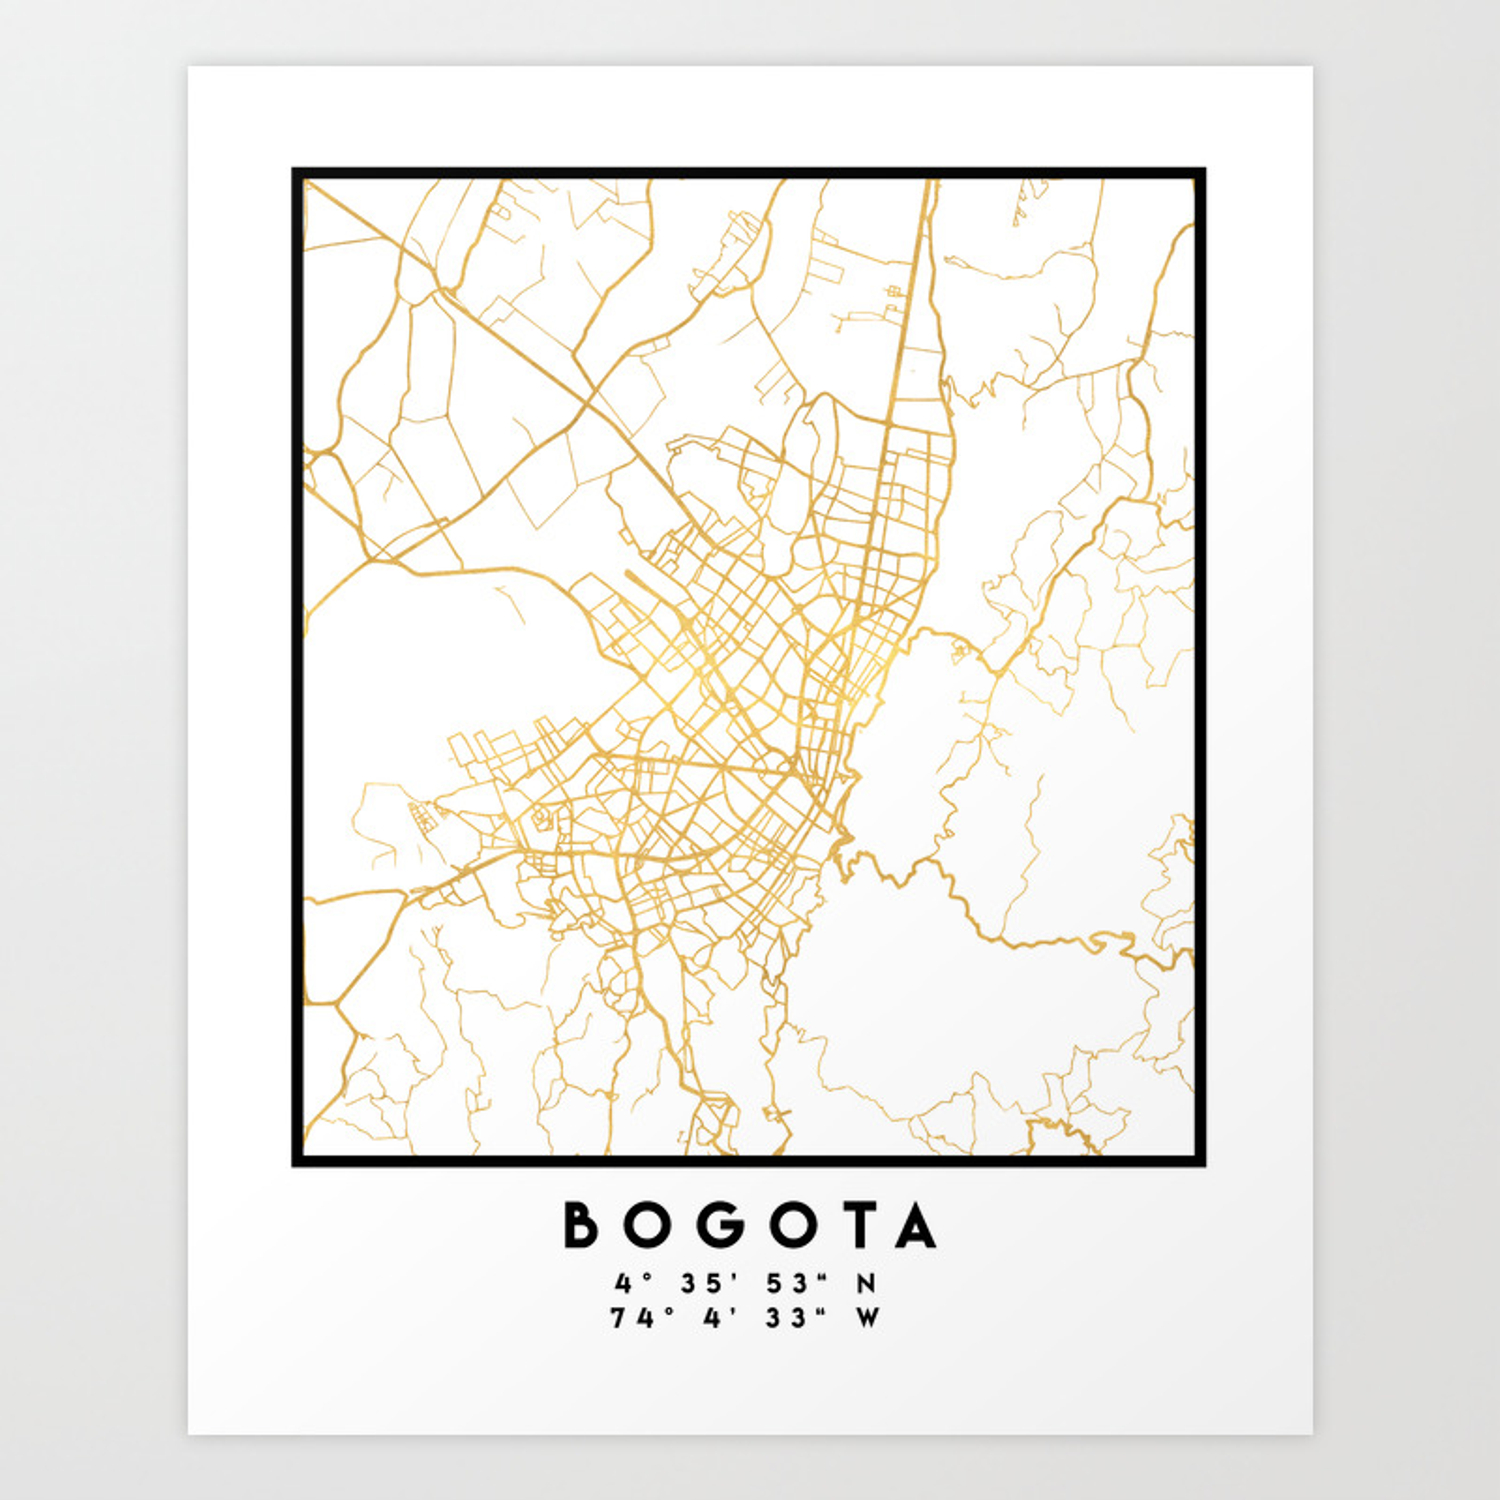 BOGOTA COLOMBIA CITY STREET MAP ART Art Print on sao paulo brazil map, caracas map, havana map, lima on map, san pedro sula map, boston map, mexico city map, dhaka map, buenos aires map, colombia map, cartagena map, quito map, chicago map, bratislava map, paramaribo map, leticia map, santiago map, asuncion map, rio de janeiro map, brasillia map,